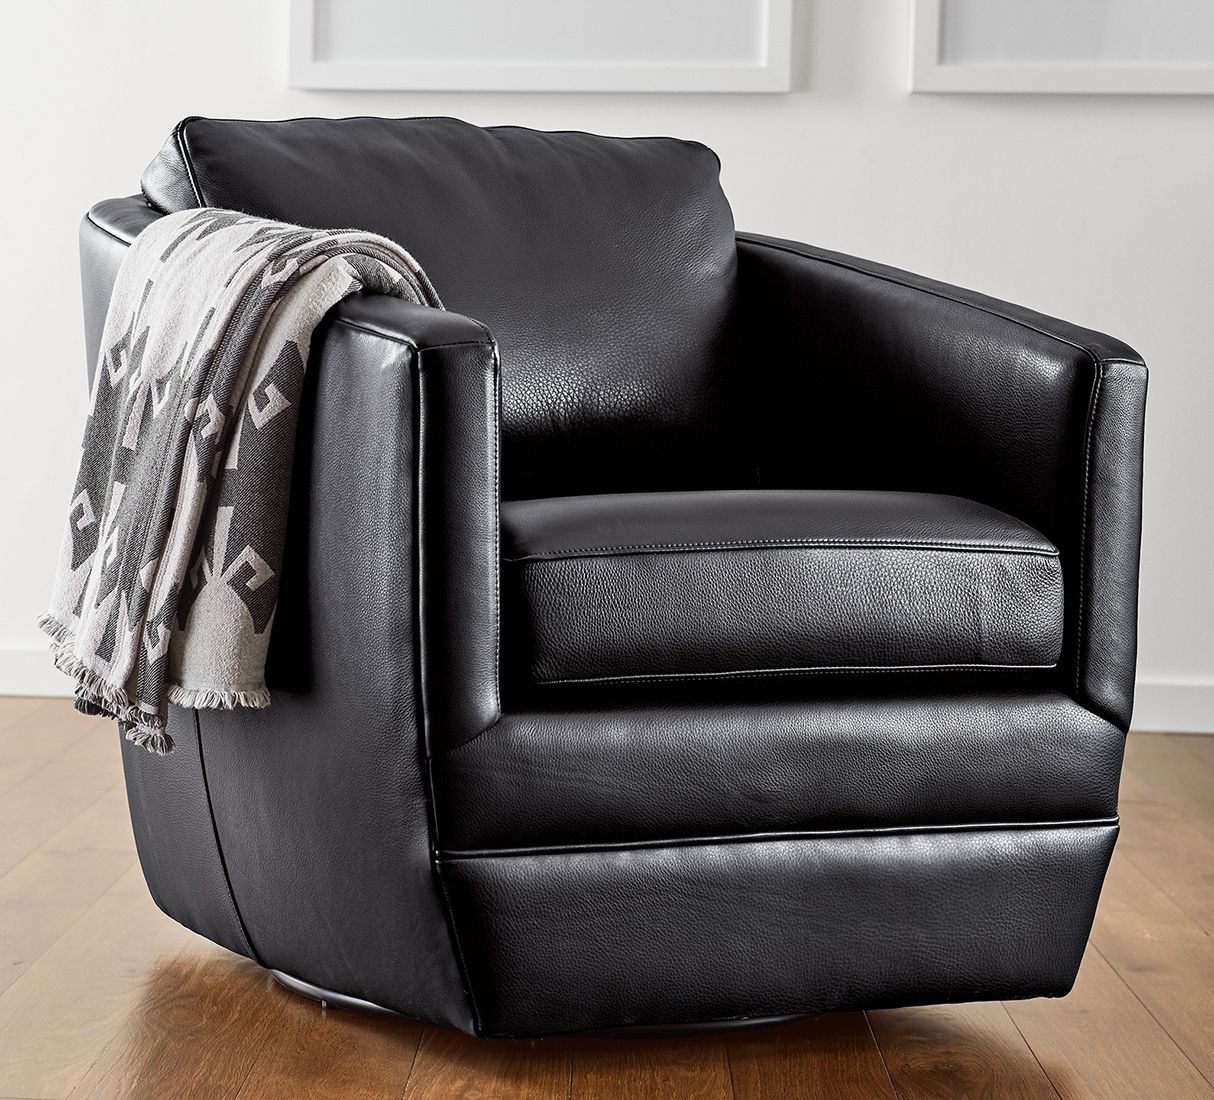 A Modern Leather Swivel Chair That Looks Right At Home In Any